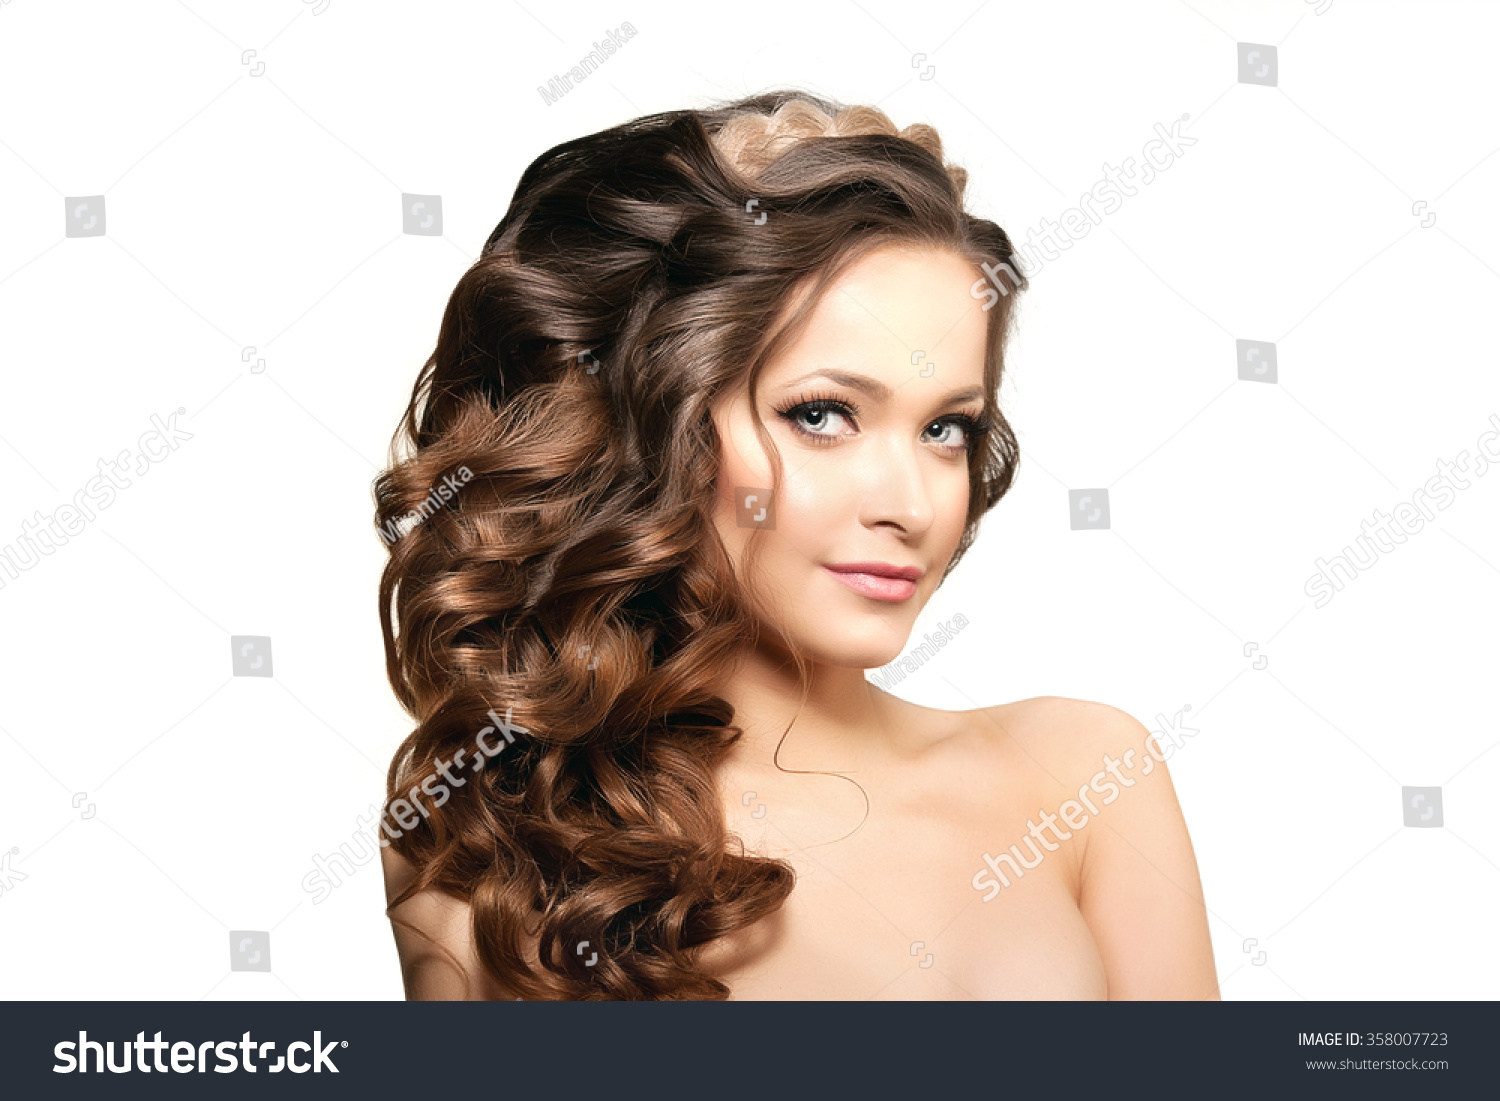 Hairstyles Female Hair Loss Model Long Hair Waves Curls Hairstyle Stock Photo 358007723